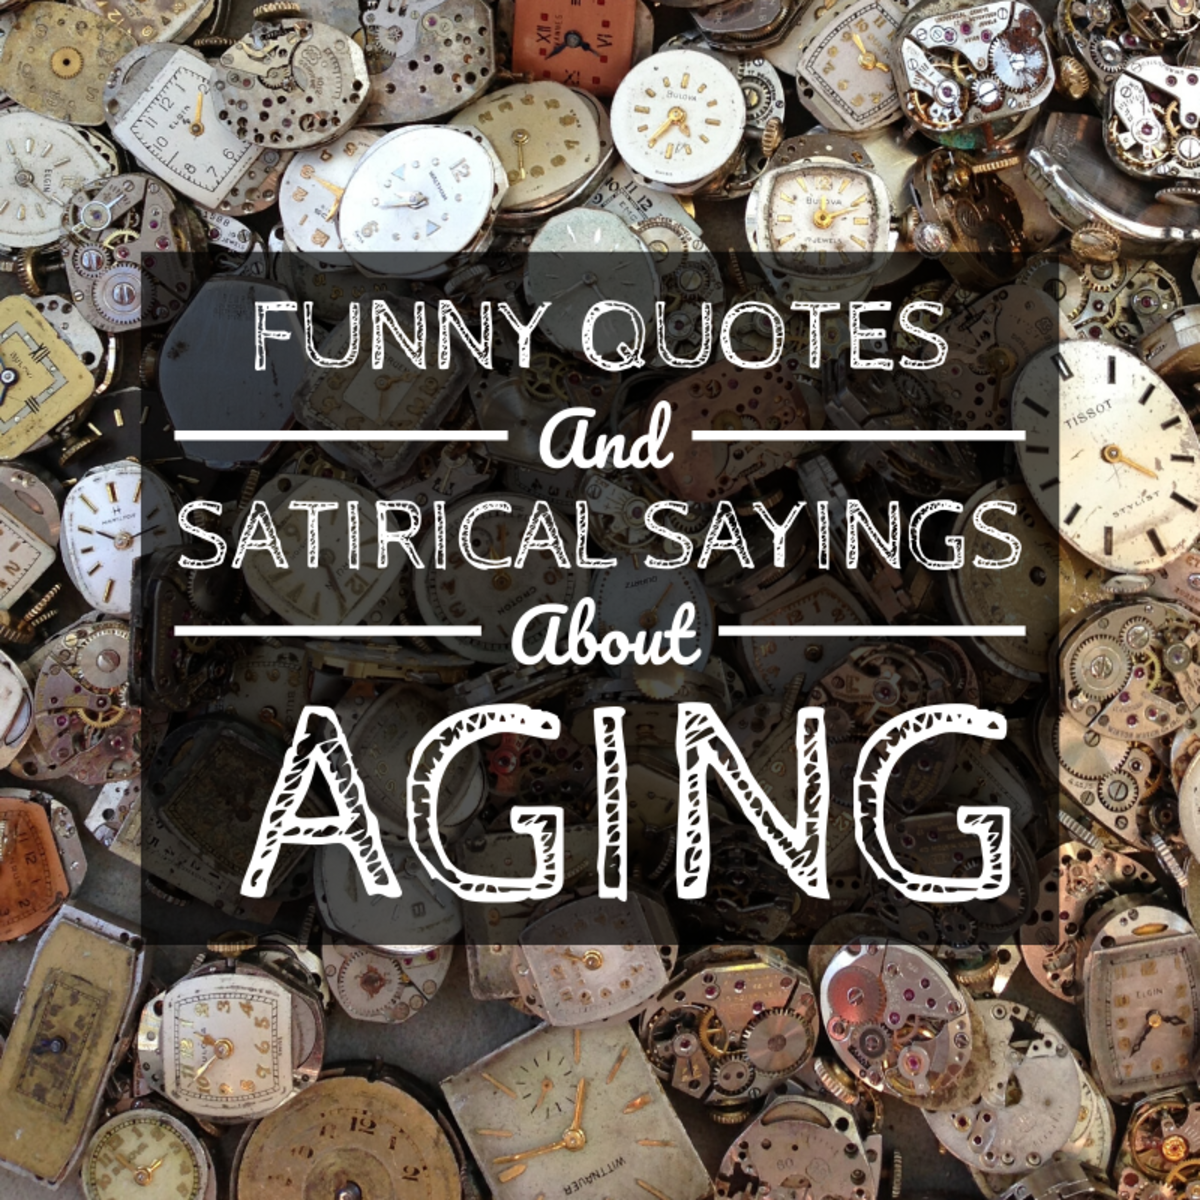 Funny Quotes and Sayings About Aging and Getting Older